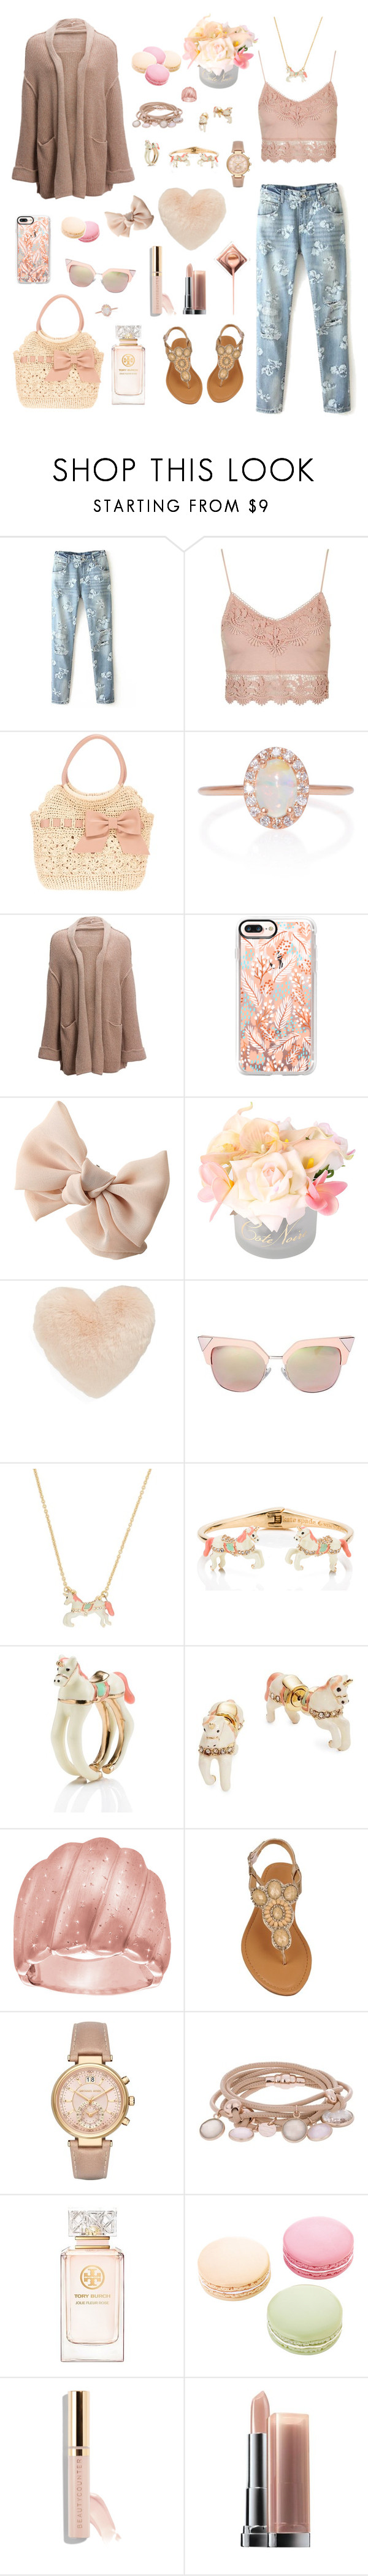 """pιnĸ & denιм"" by booknerd1326 ❤ liked on Polyvore featuring Topshop, RED Valentino, Marlo Laz, Free People, Casetify, Nordstrom, Fendi, Kate Spade, Michael Kors and Marjana von Berlepsch"